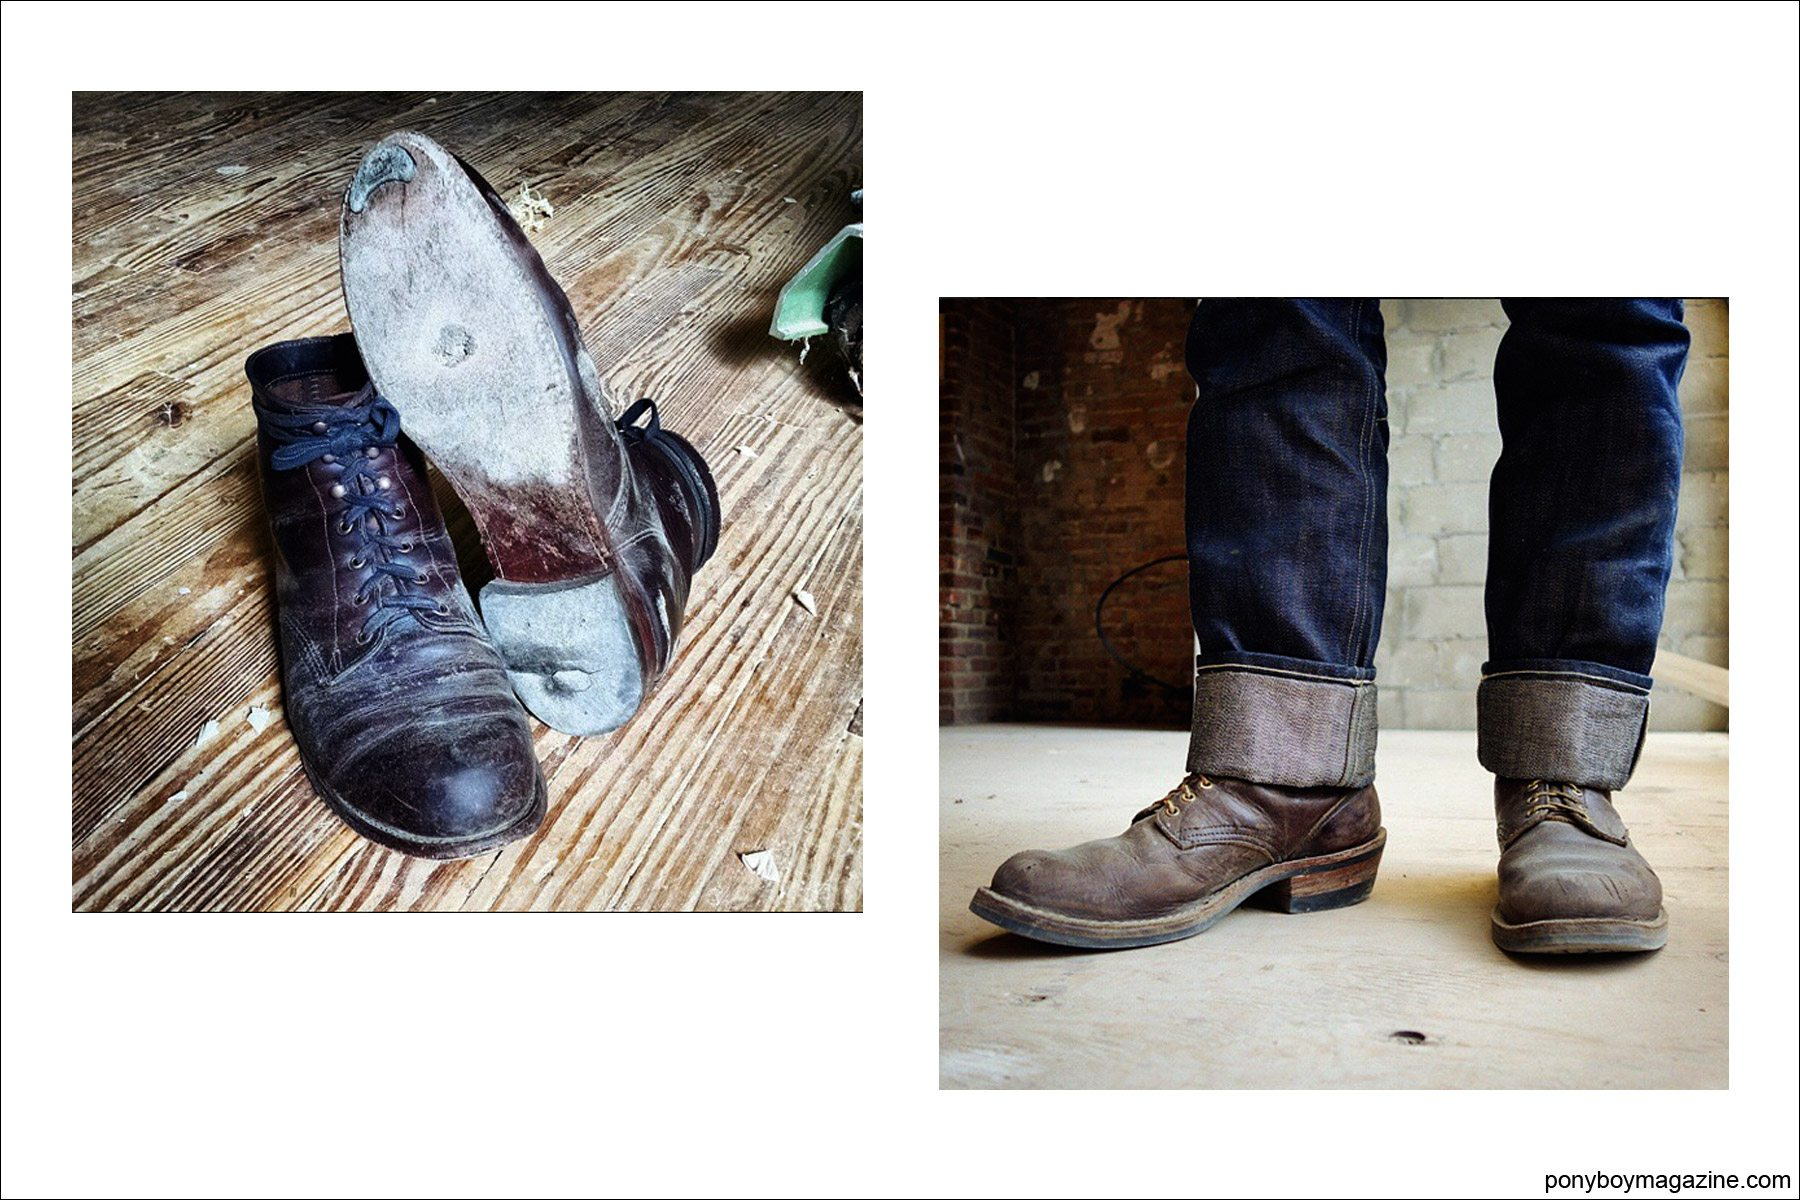 Photos of work boots, from the collection of Jim Landwehr, for Ponyboy Magazine.